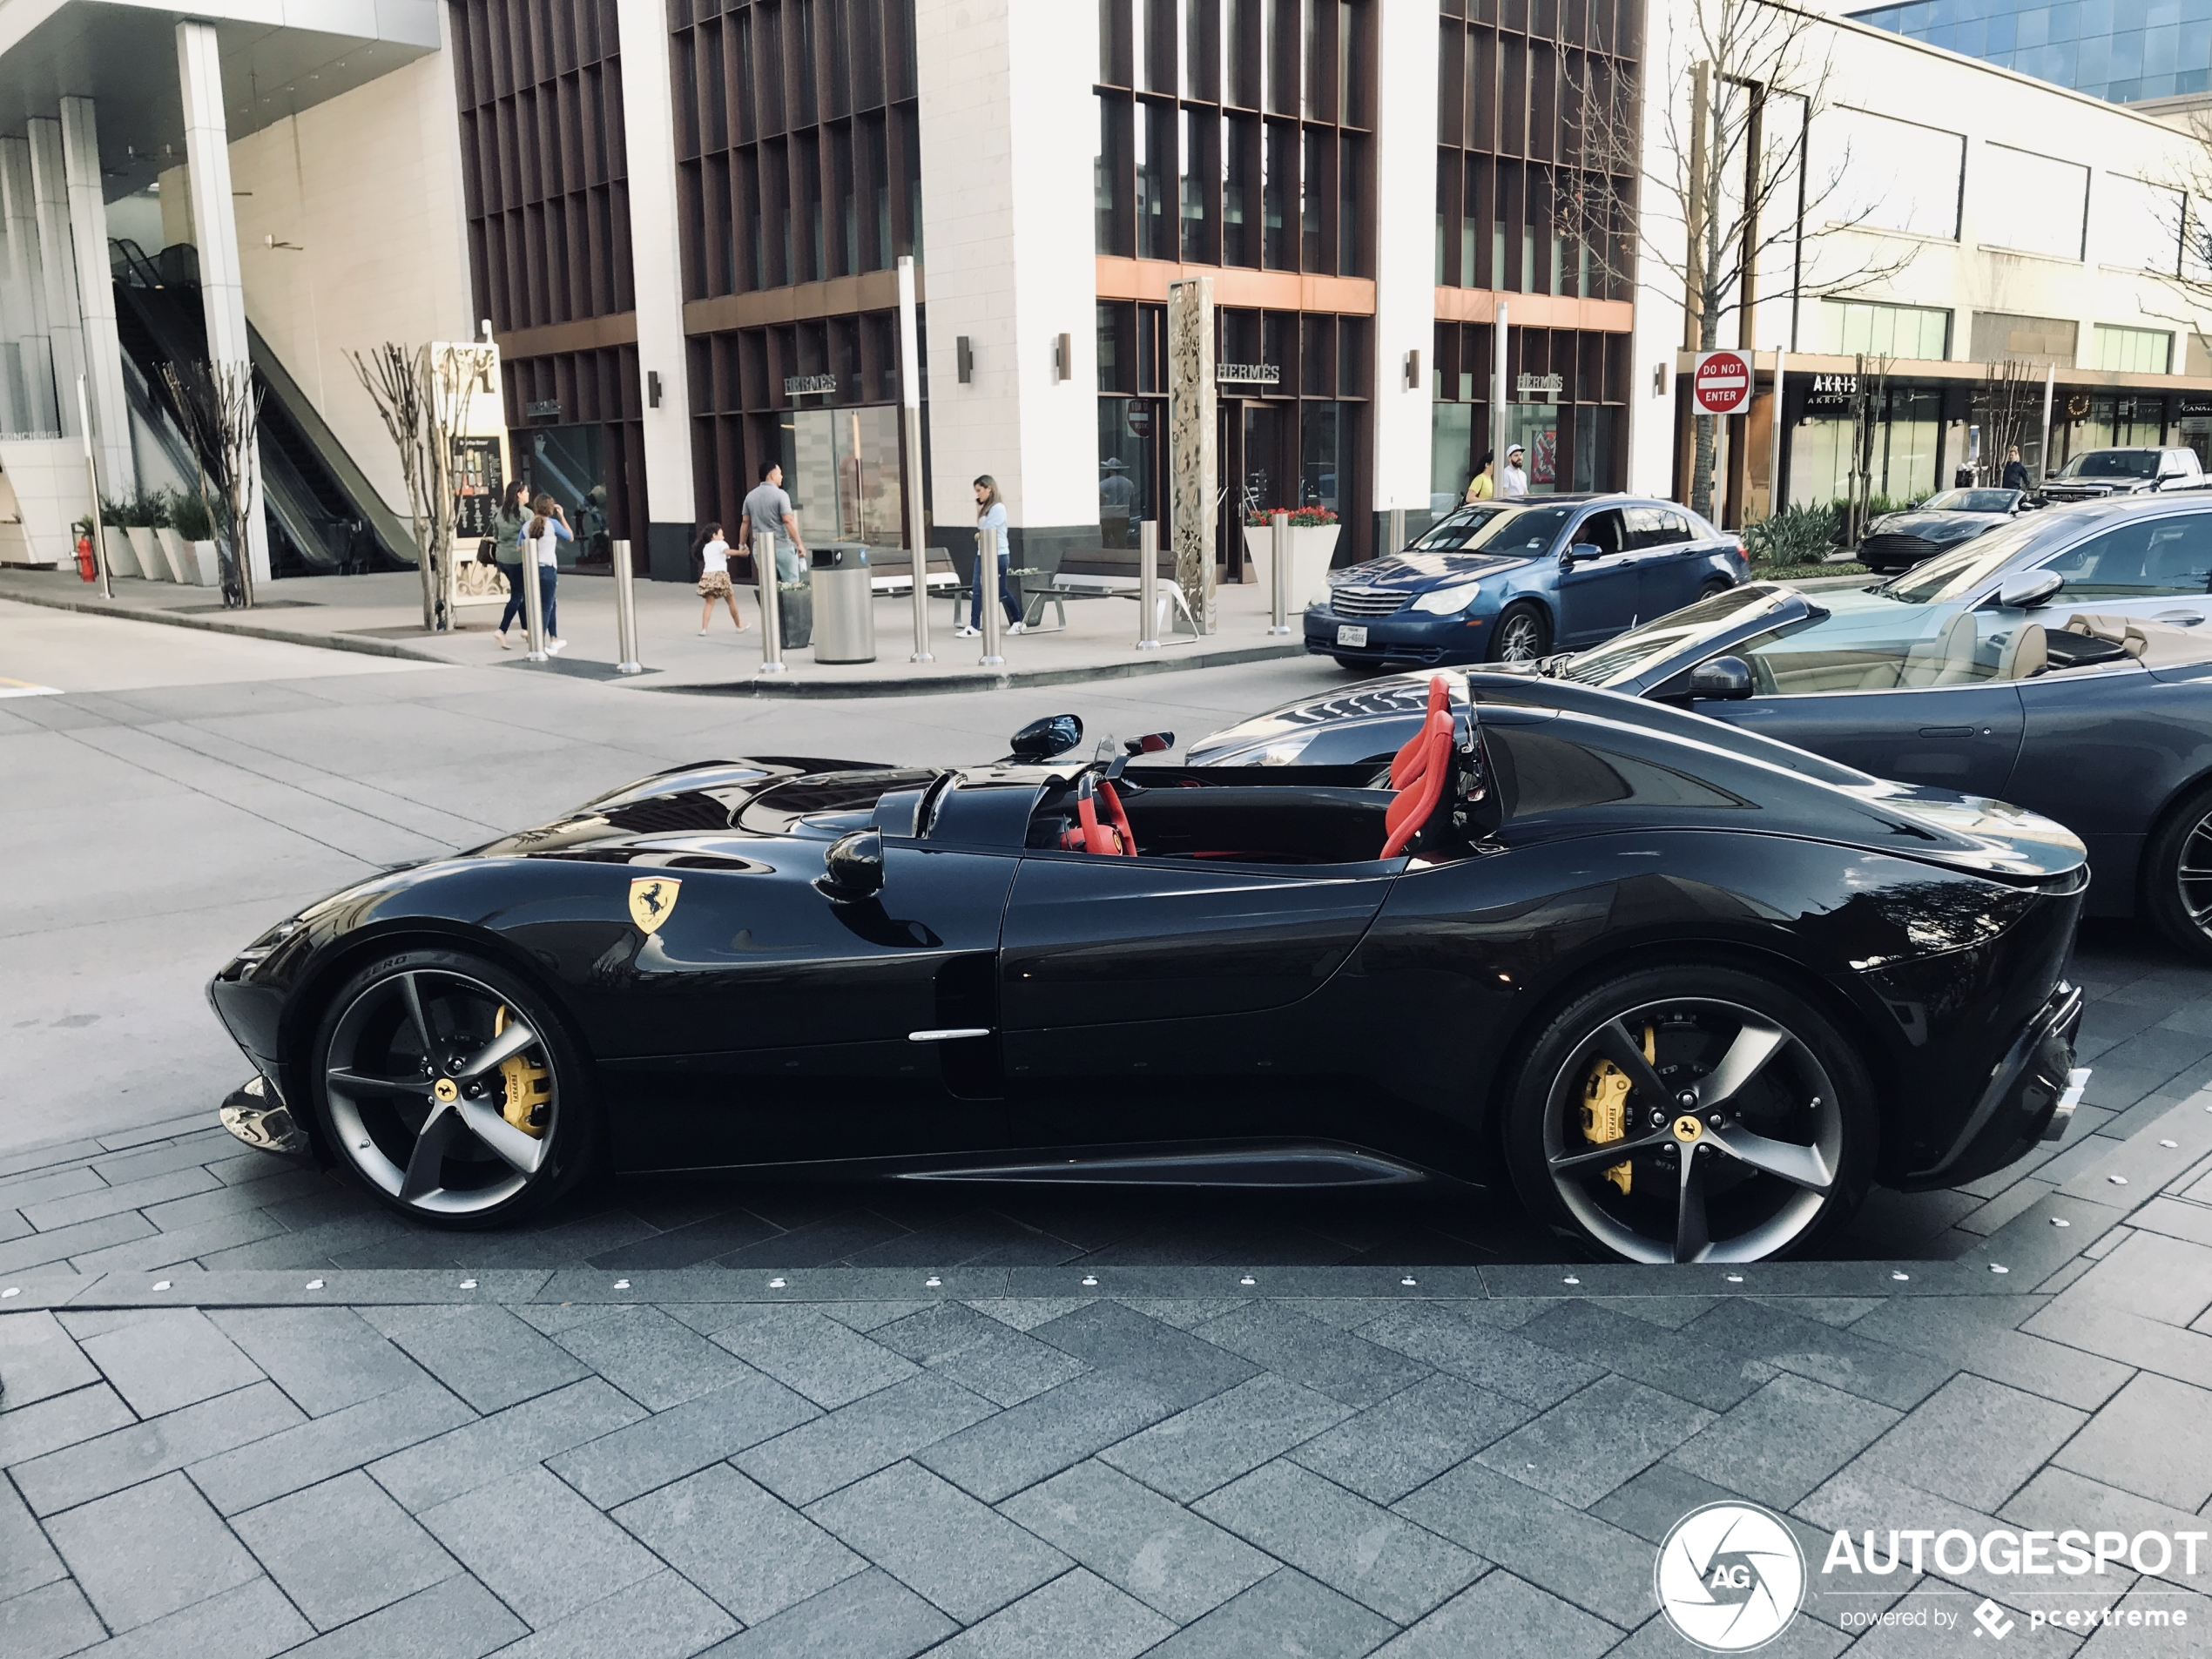 Ferrari Monza SP2 shows off in downtown Houston